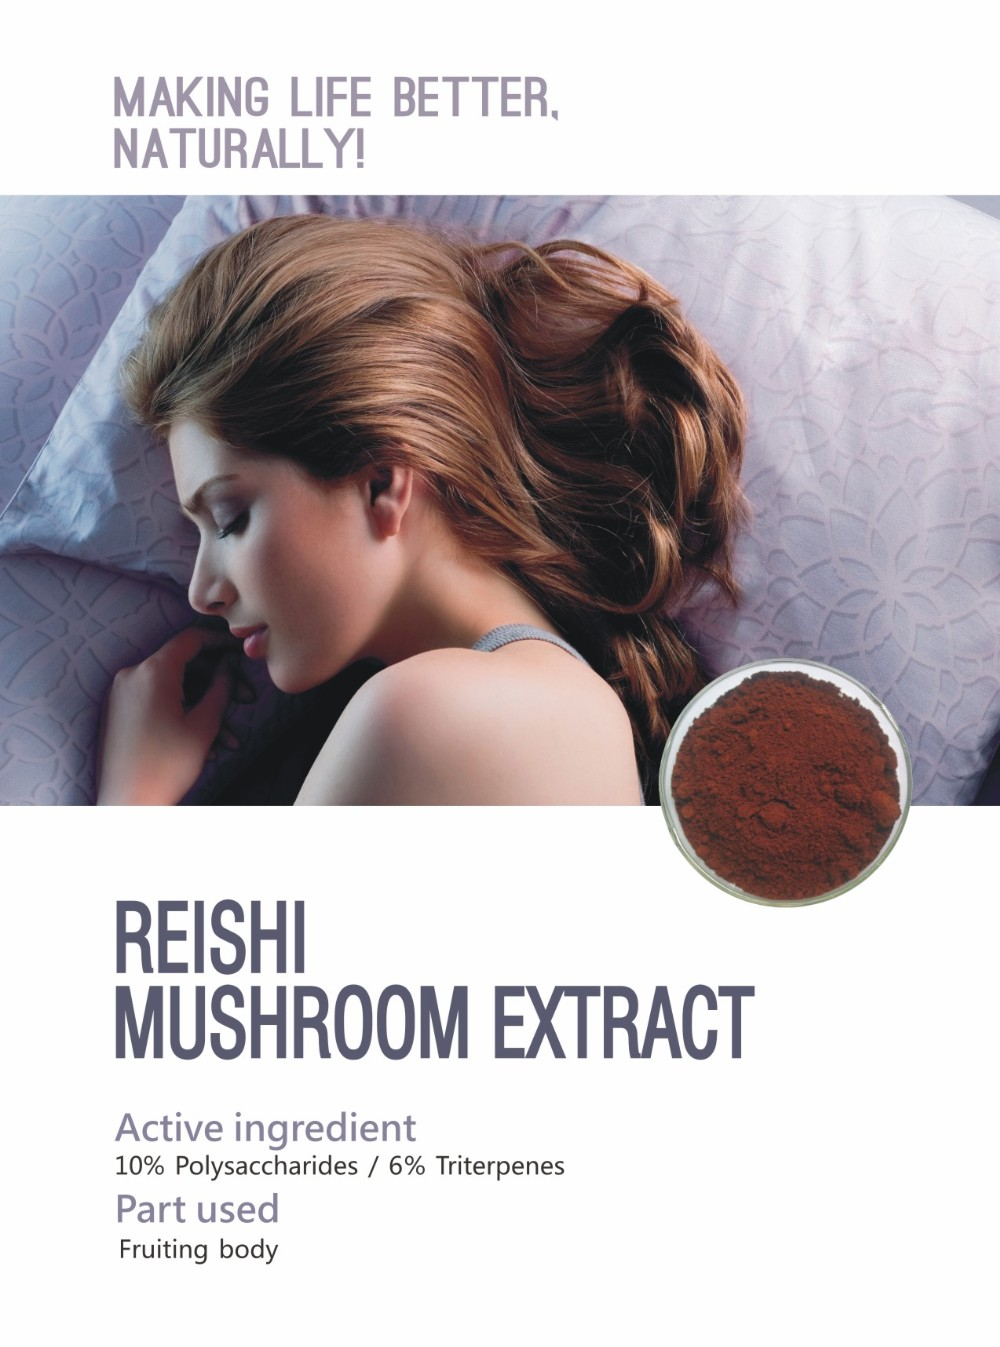 king food without auxiliaries cGMP proof factory Natural and pure reishi extract triterpenes 6% reishi mushroom extract